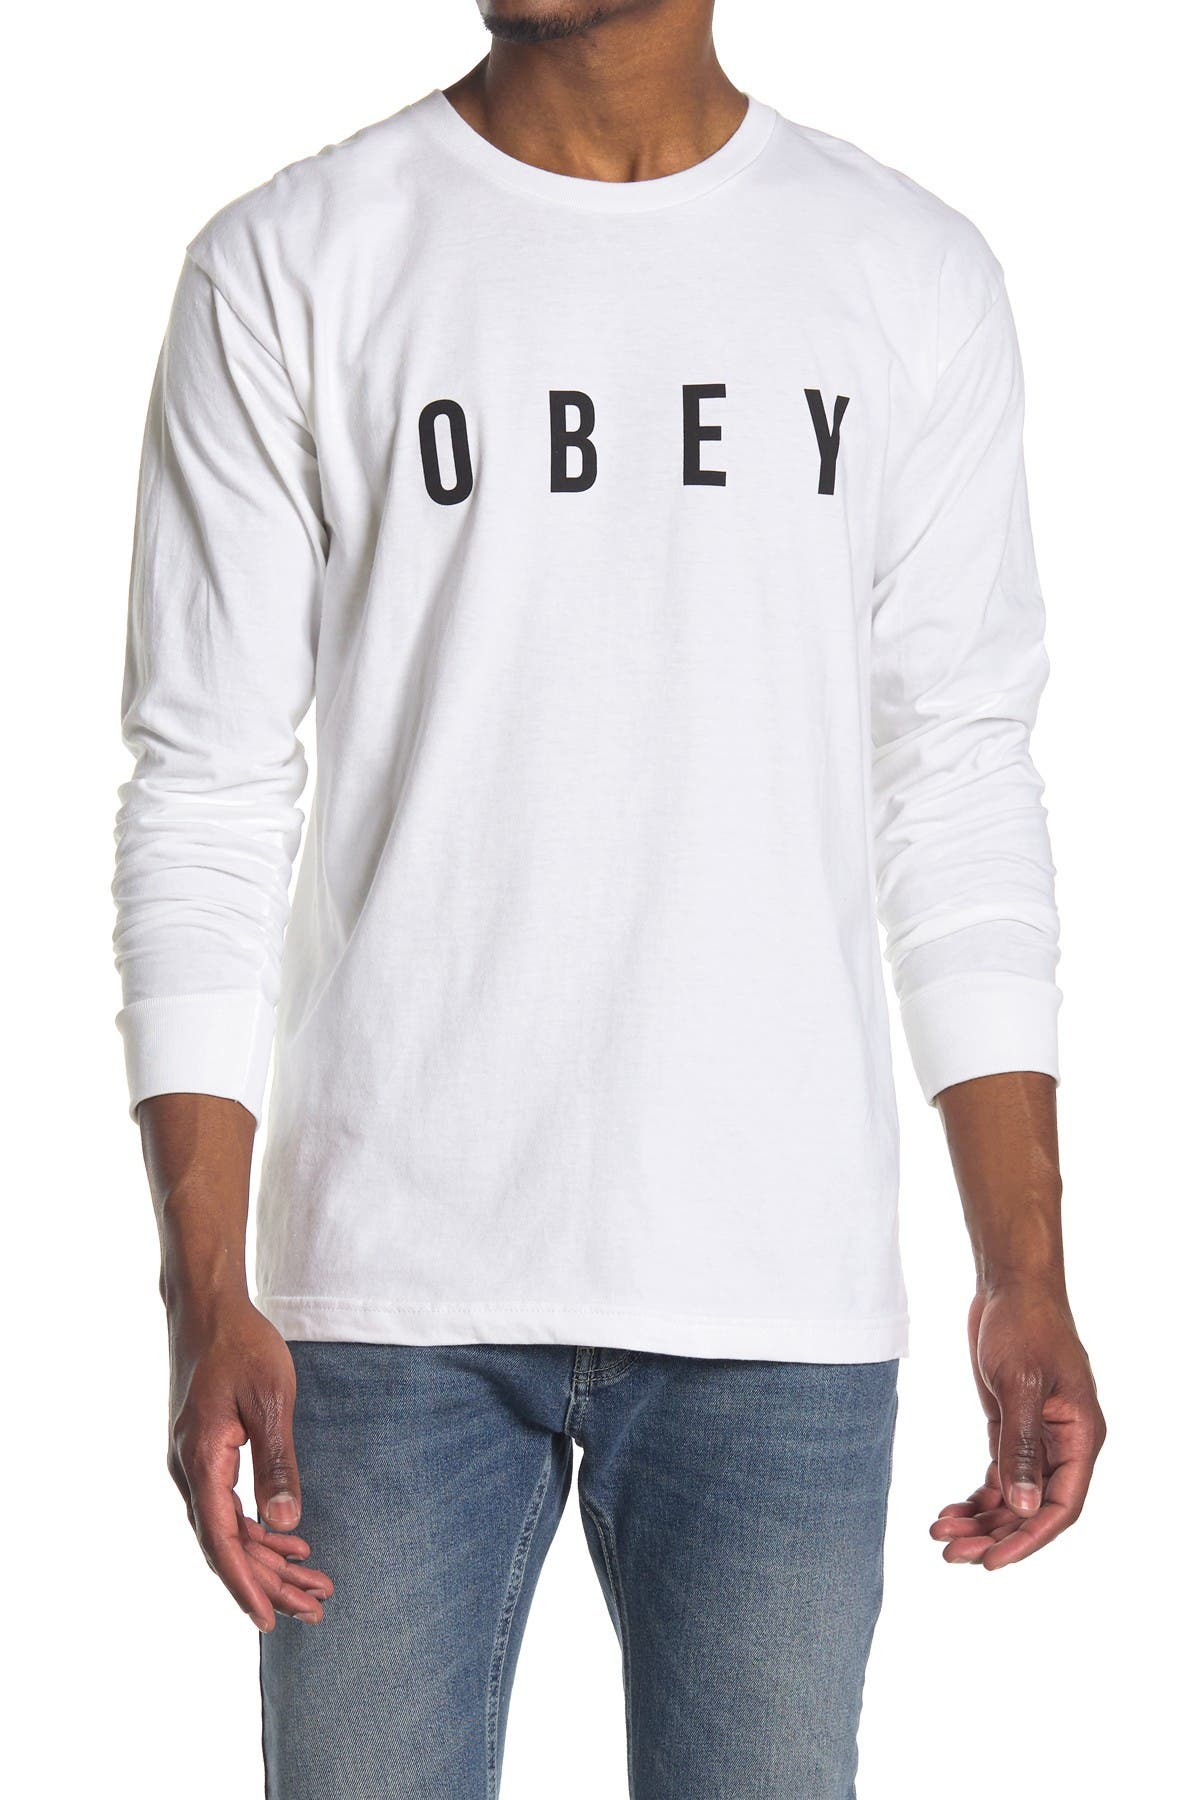 Image of Obey Anyway Long Sleeve Logo Graphic Shirt